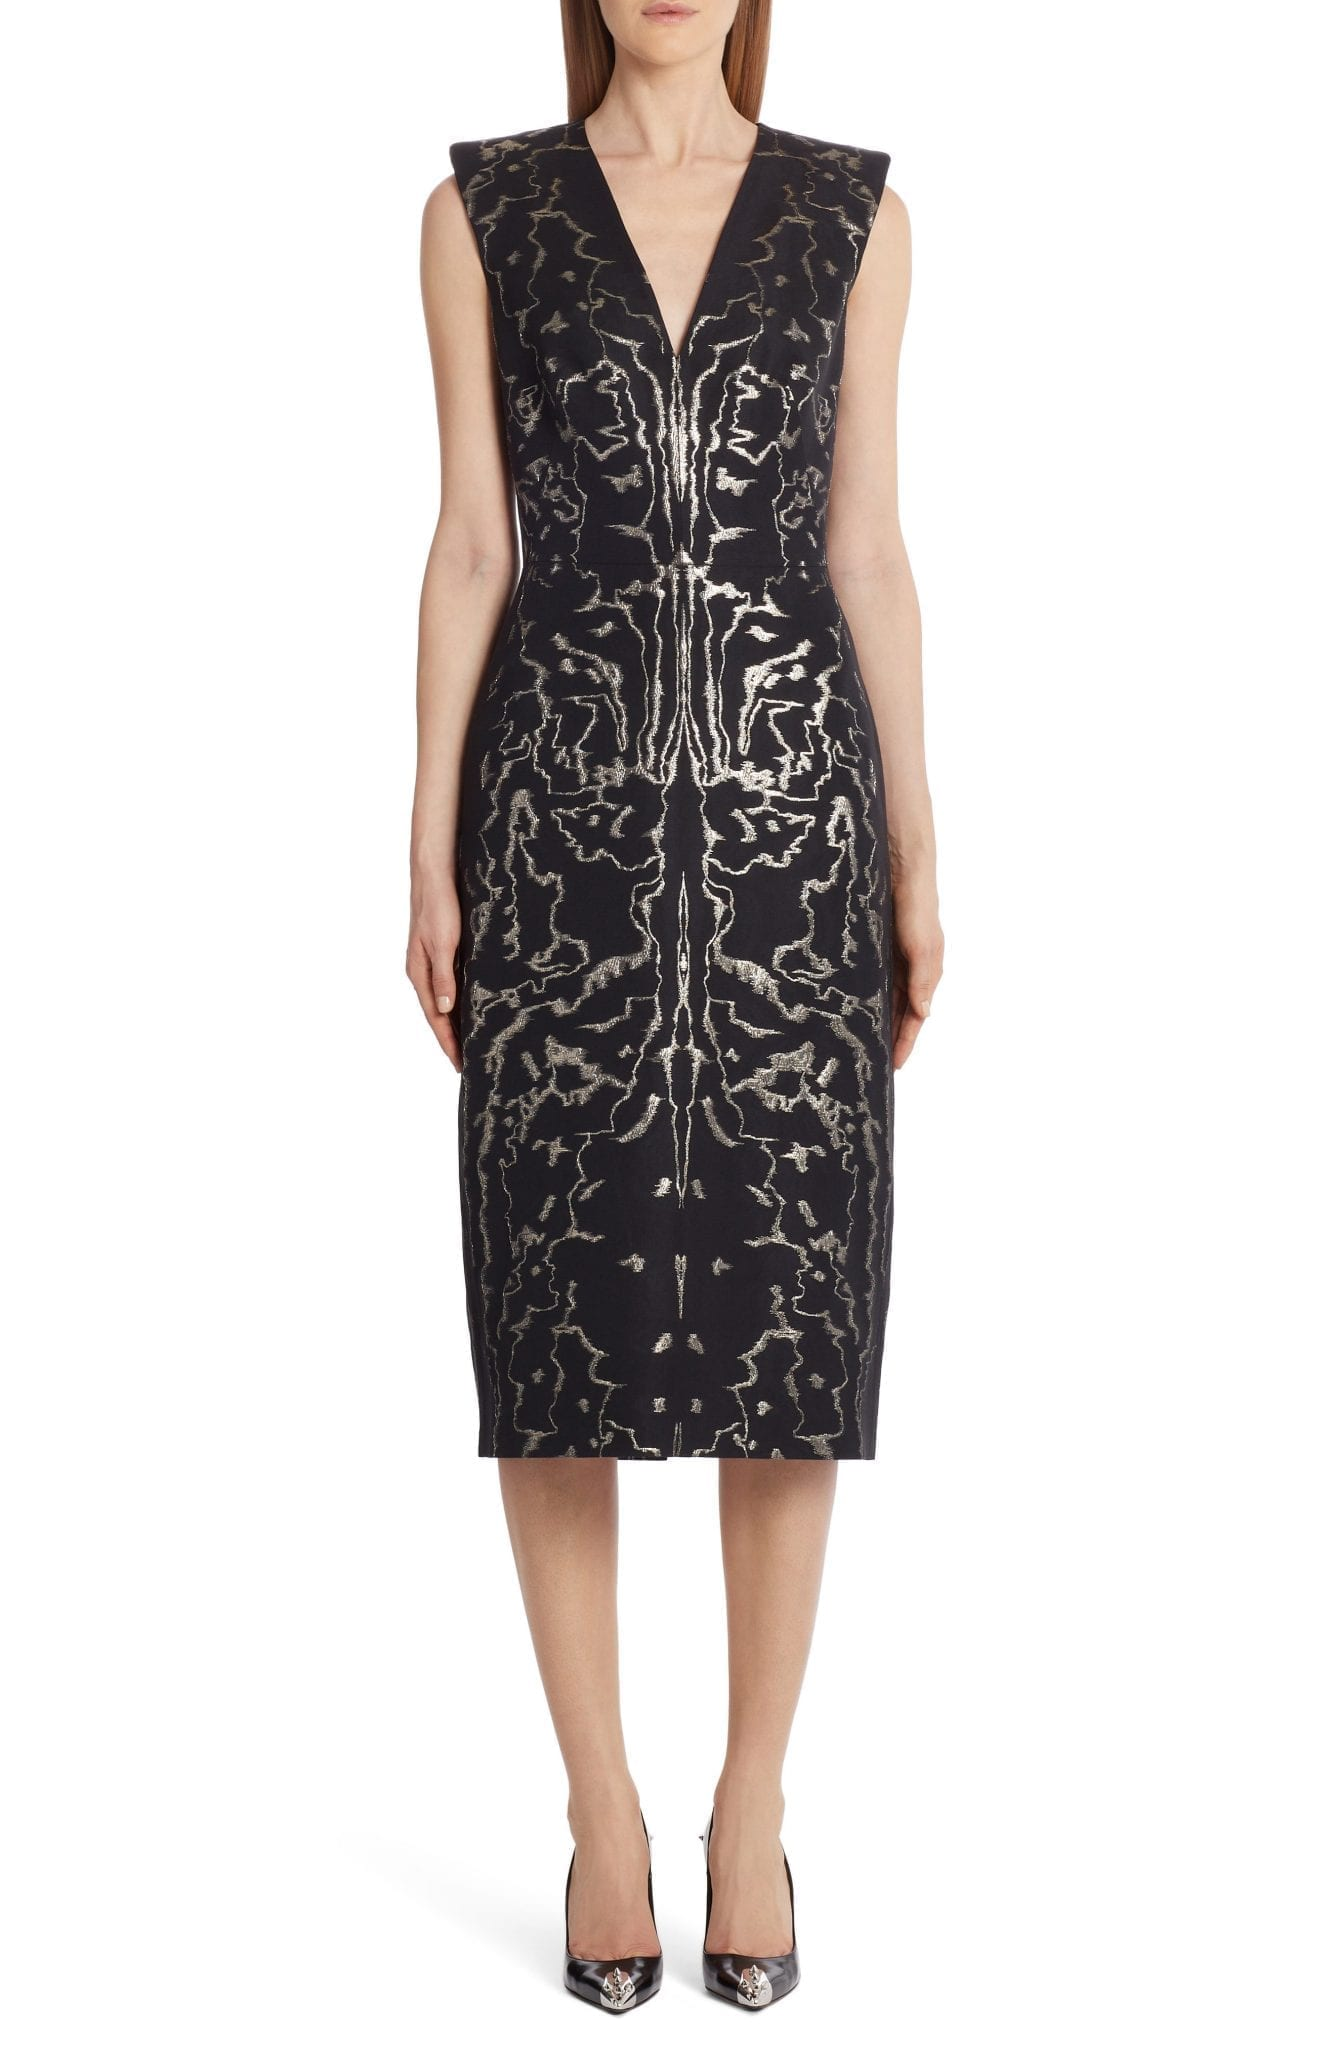 ALEXANDER MCQUEEN Sleeveless Jacquard Midi Sheath Dress